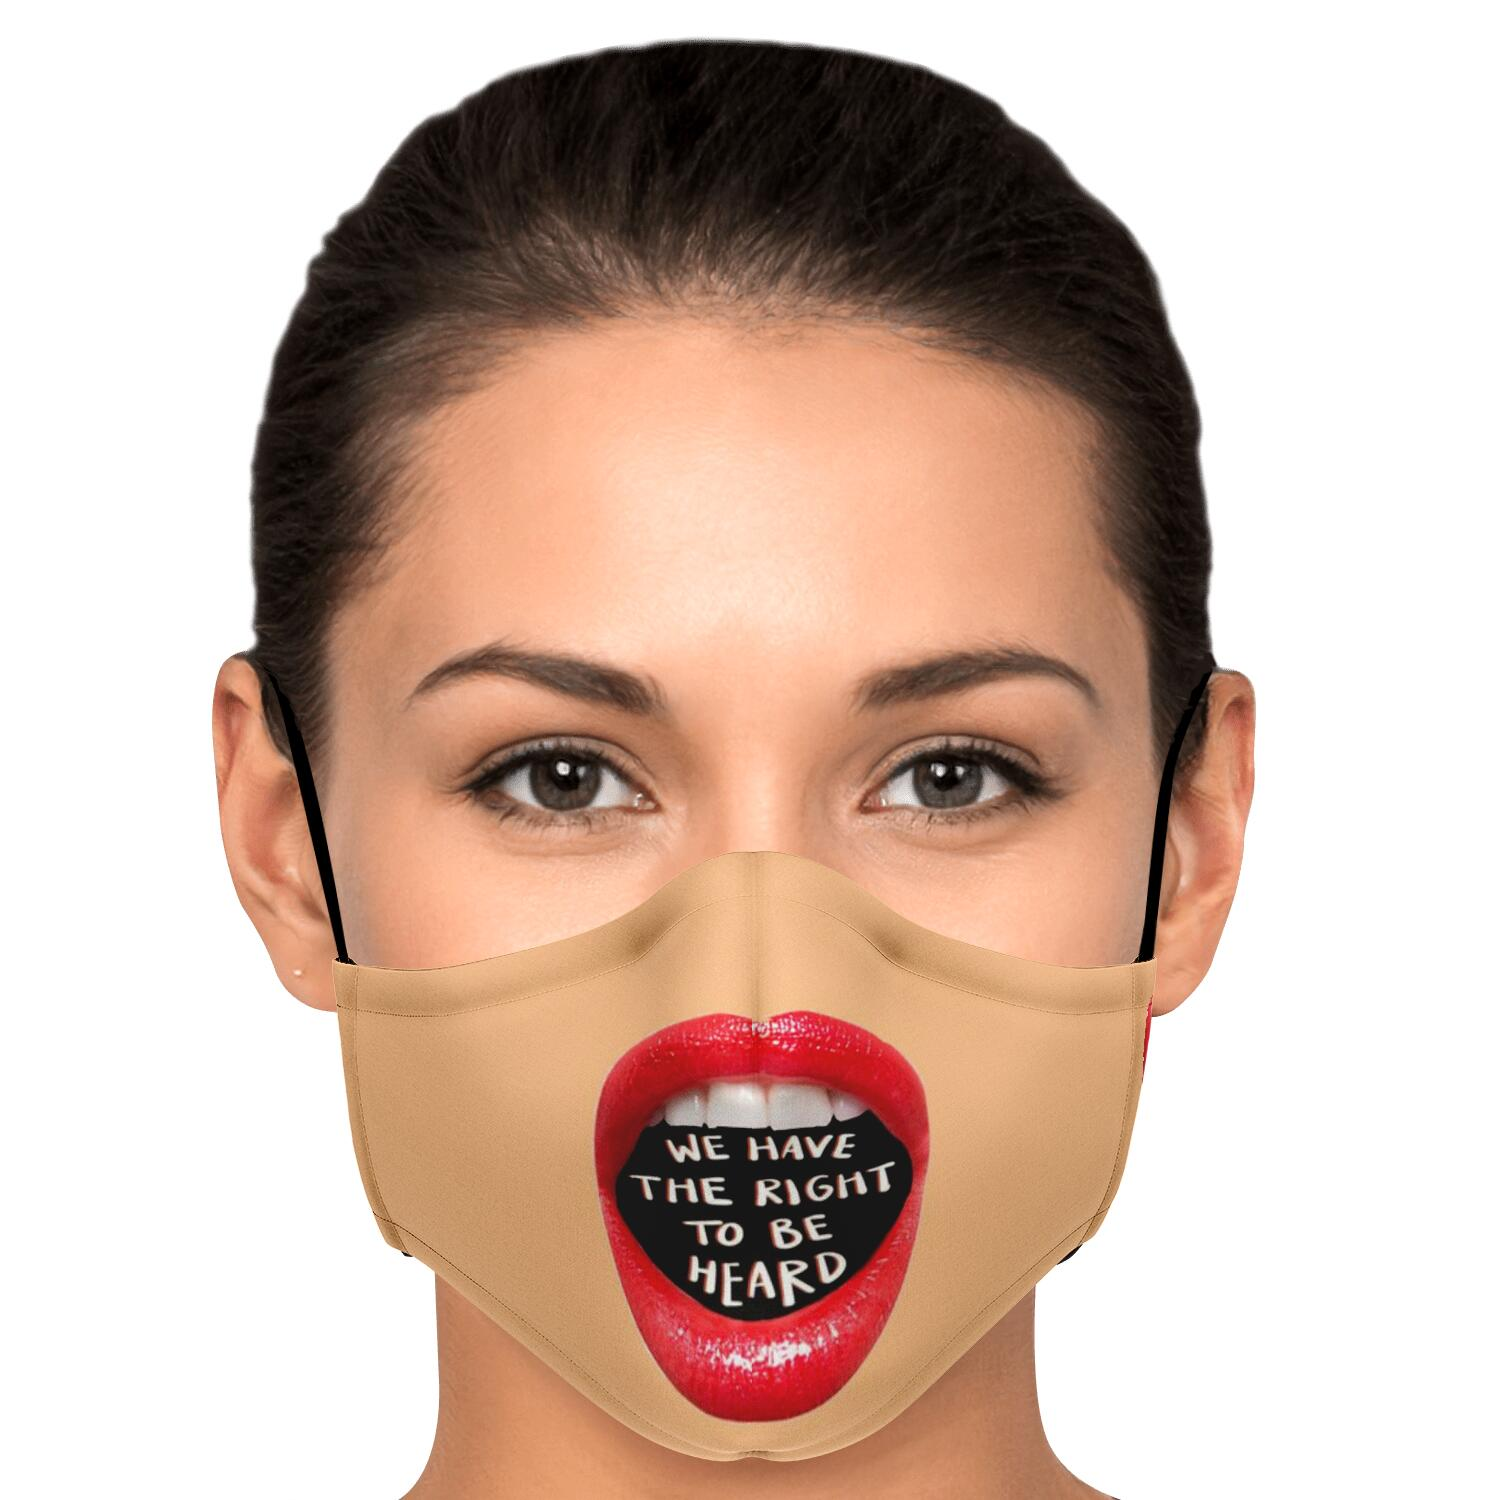 we have the right to be heard -Face mask